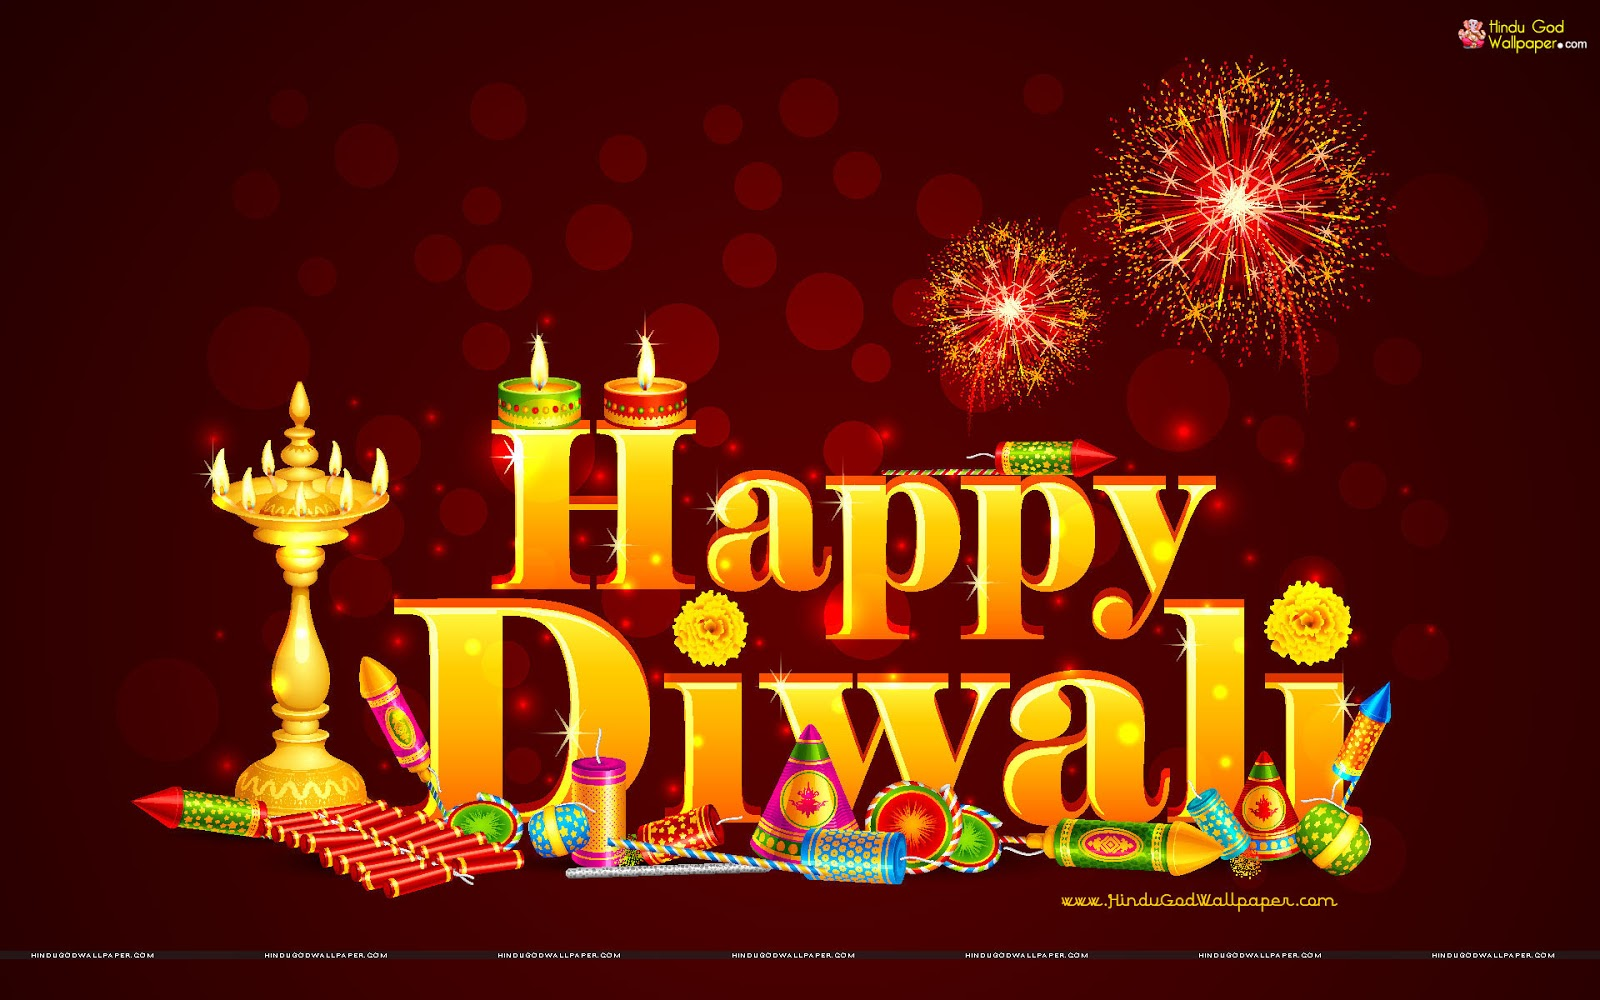 Best Hd Happy Diwali Posters Wallpaper Galleries 2015 HD Wallpapers Download Free Images Wallpaper [1000image.com]